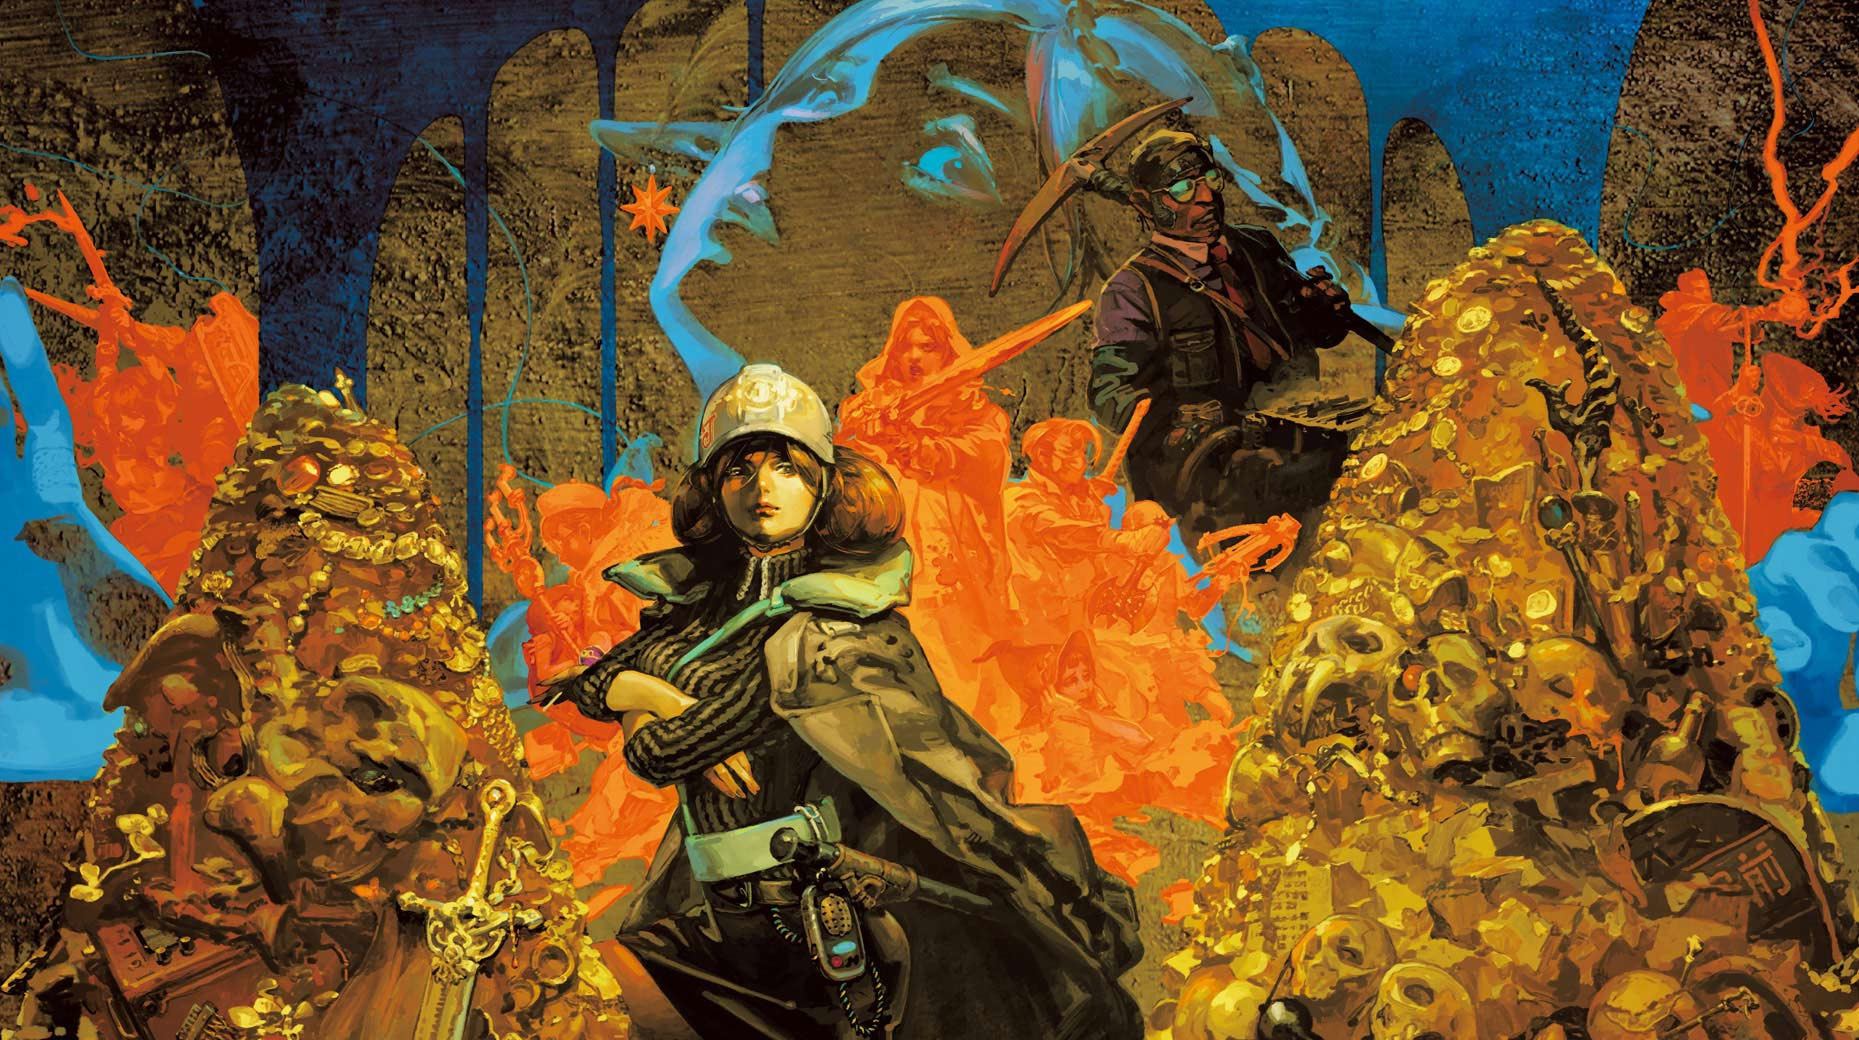 Undernauts: Labyrinth of Yomi Artwork of a woman dressed in protective mining gear, smugly posing in front of mountains of golden treasure.